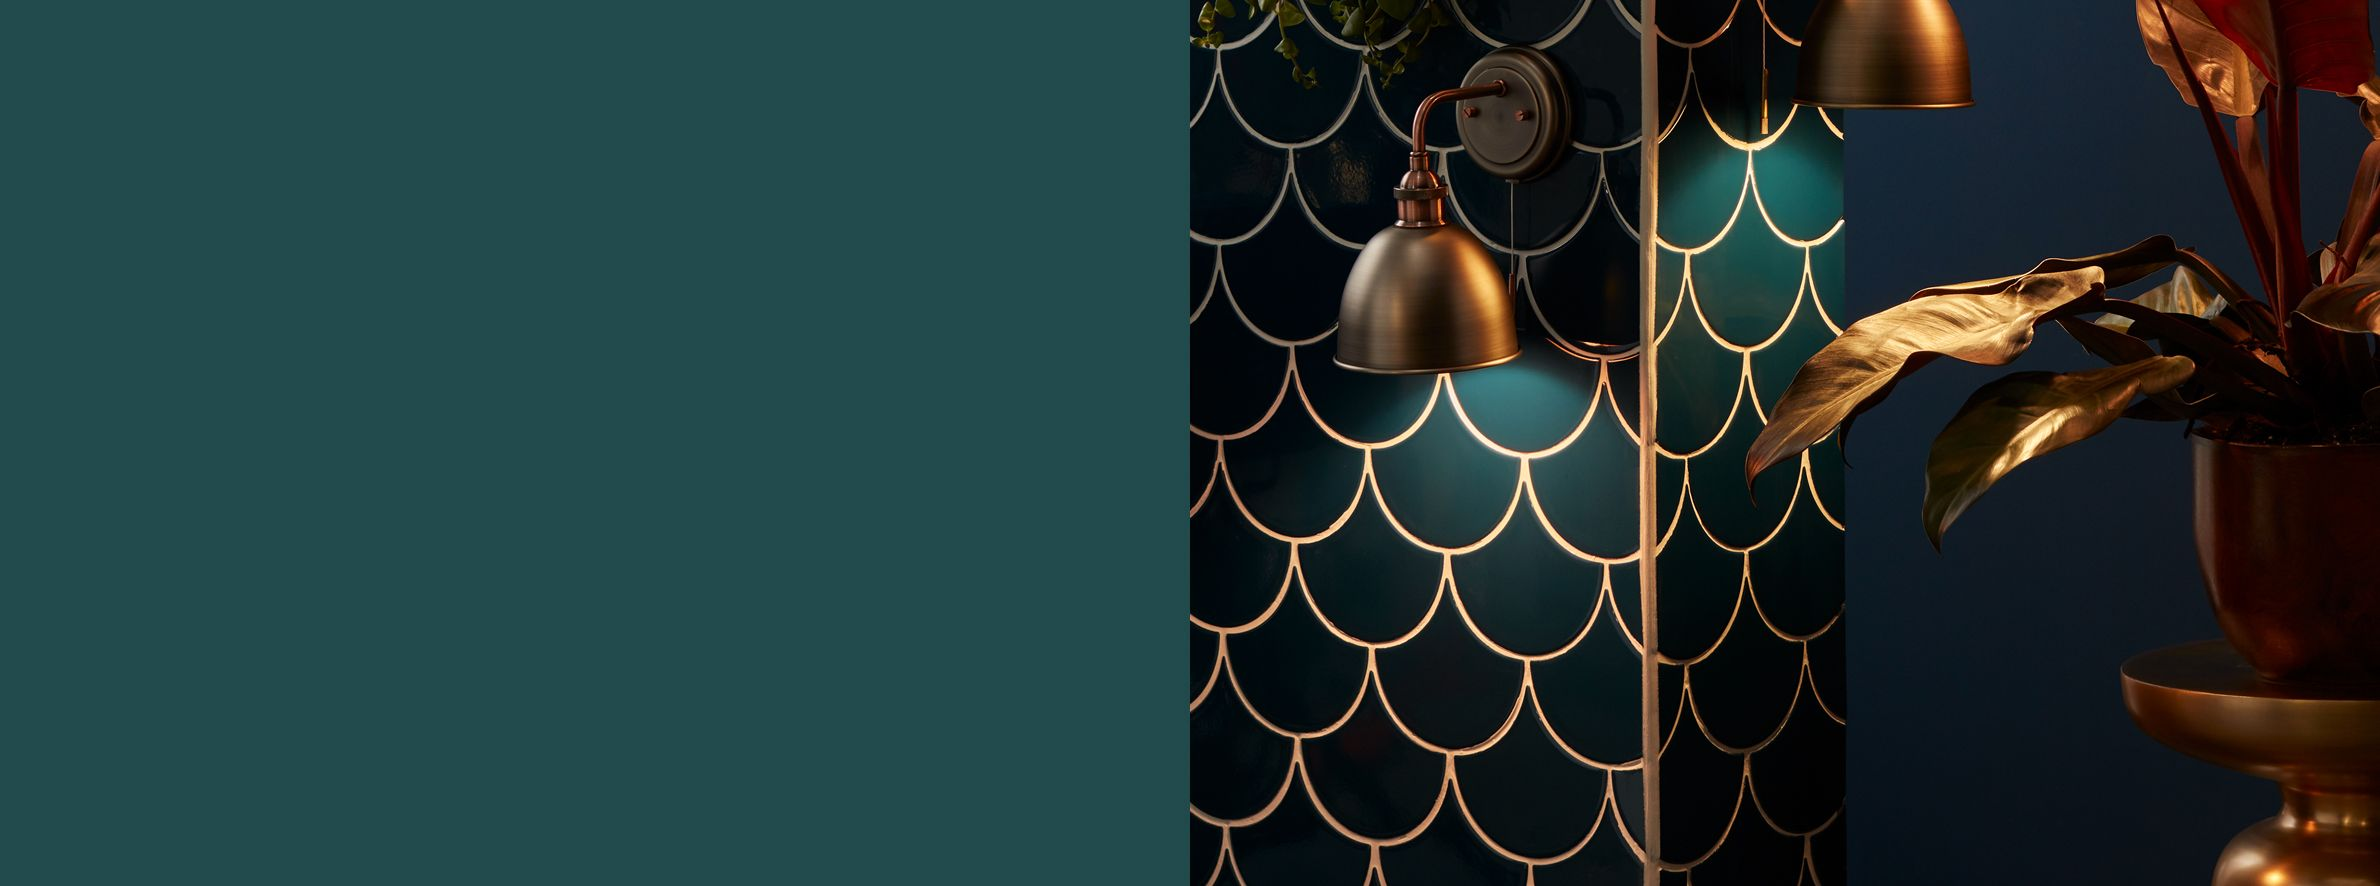 Wall Lighting Furniture Lights John Lewis Partners Installing Mounted Buying Guide Installation Service